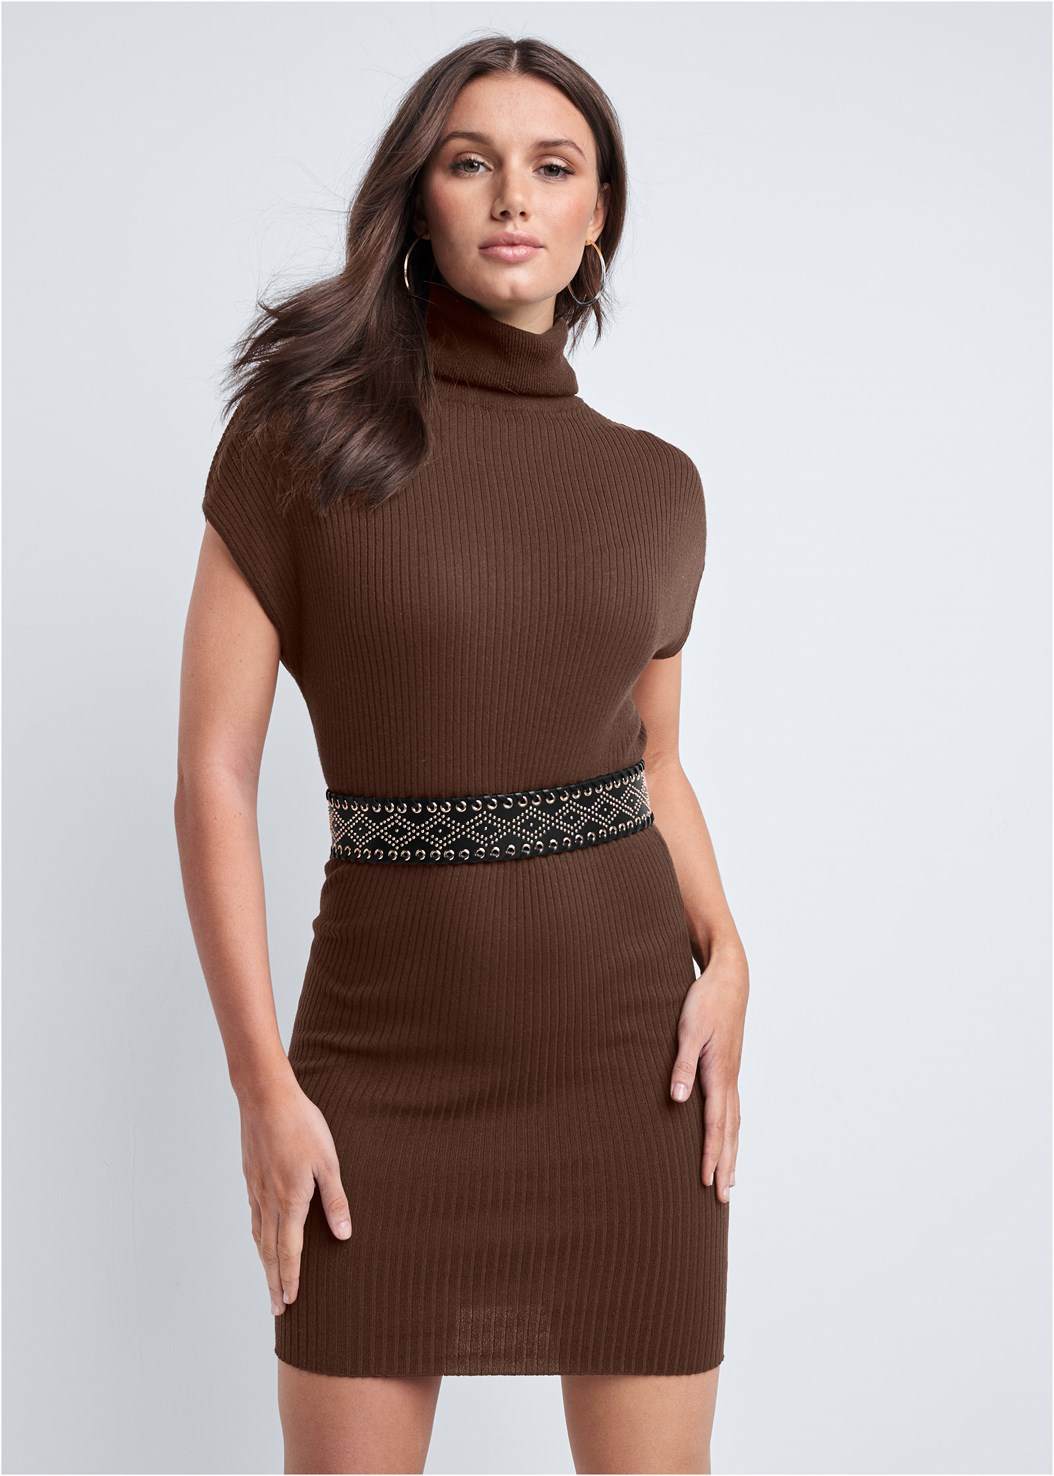 Turtleneck Sweater Dress,Seamless Unlined Bra,Knee High Block Heel Boot,Embellished Waist Belt